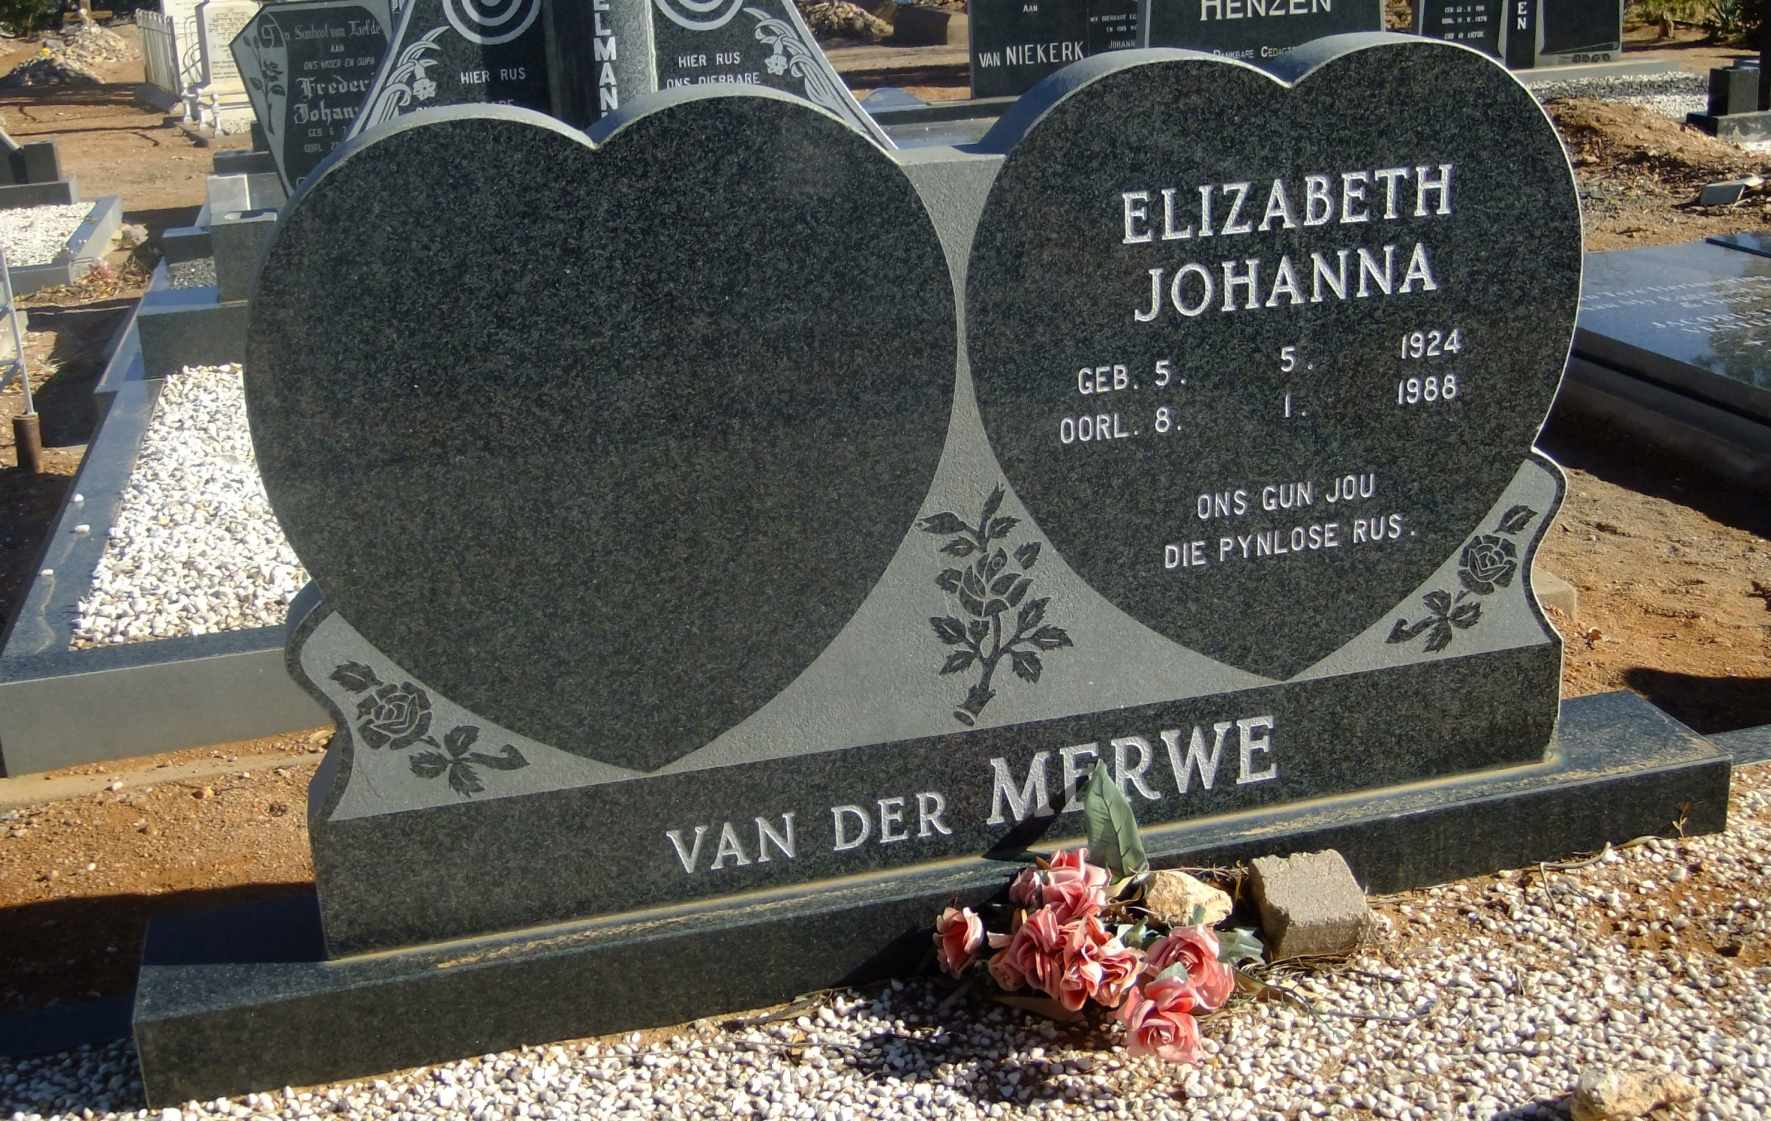 Van der Merwe, Elizabeth Johann born 05 May 192 died 8 January 1988